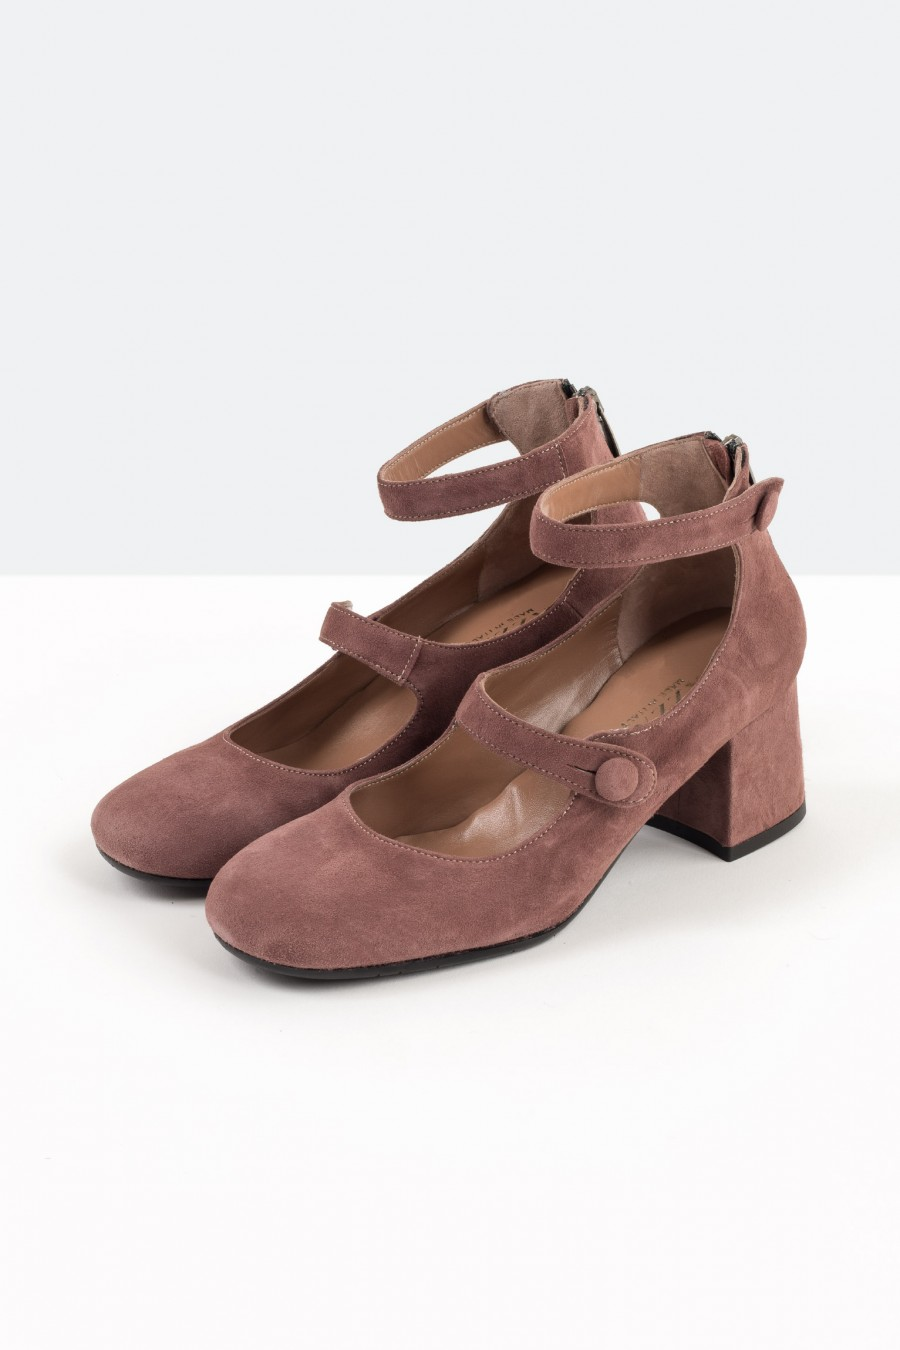 Mallow pink suede Mary Jane shoes